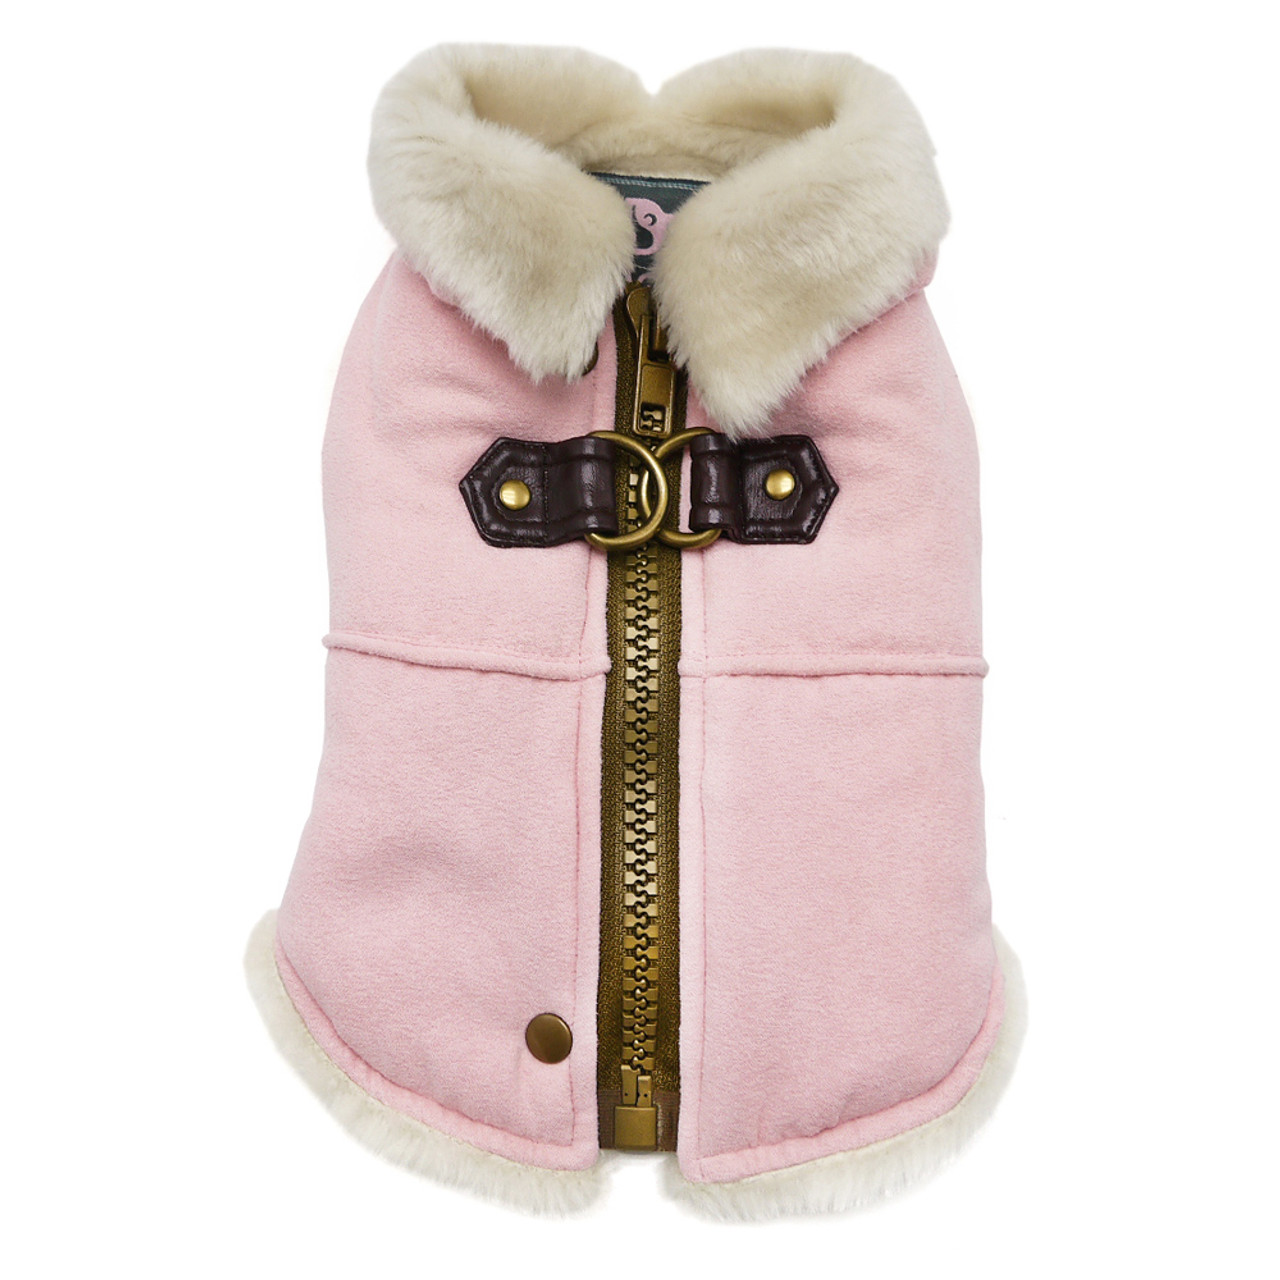 Furry Runner Coat with Built In Harness